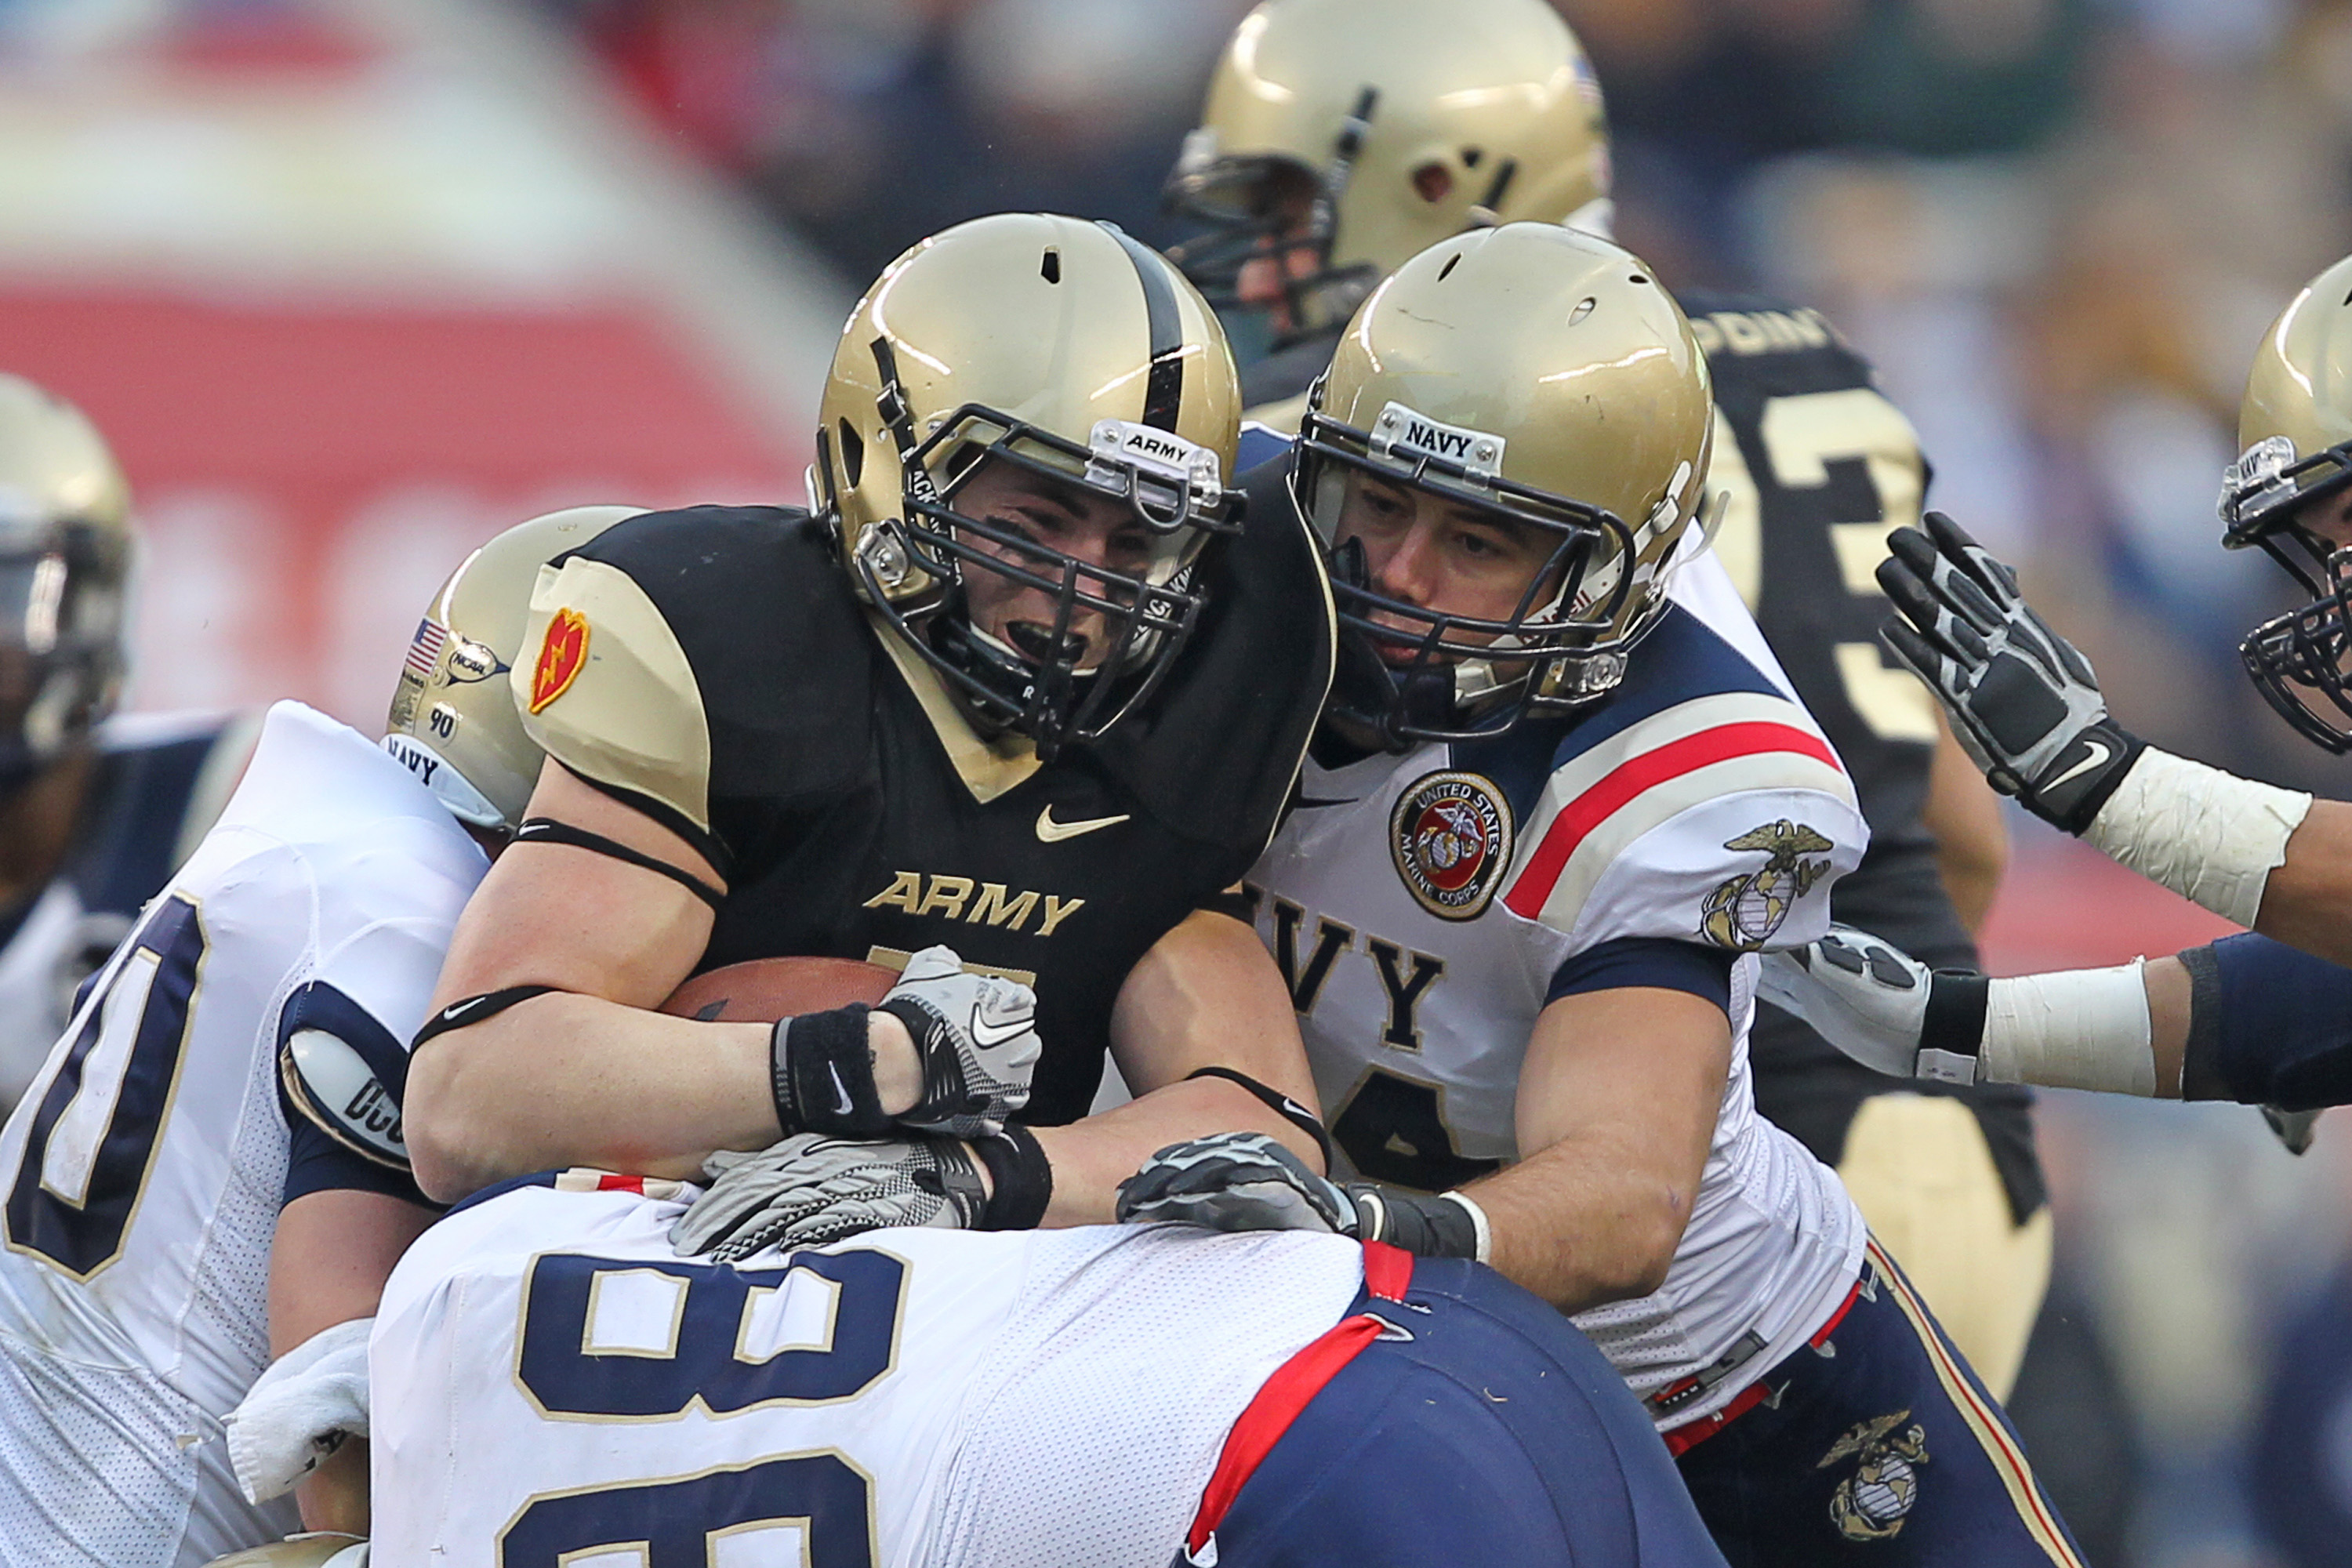 PHILADELPHIA - DECEMBER 11: Quarterback Trent Steelman #8 of the Army Black Knights is tackled during the game against the Navy Midshipmen on December 11, 2010 at Lincoln Financial Field in Philadelphia, Pennsylvania. (Photo by Hunter Martin/Getty Images)